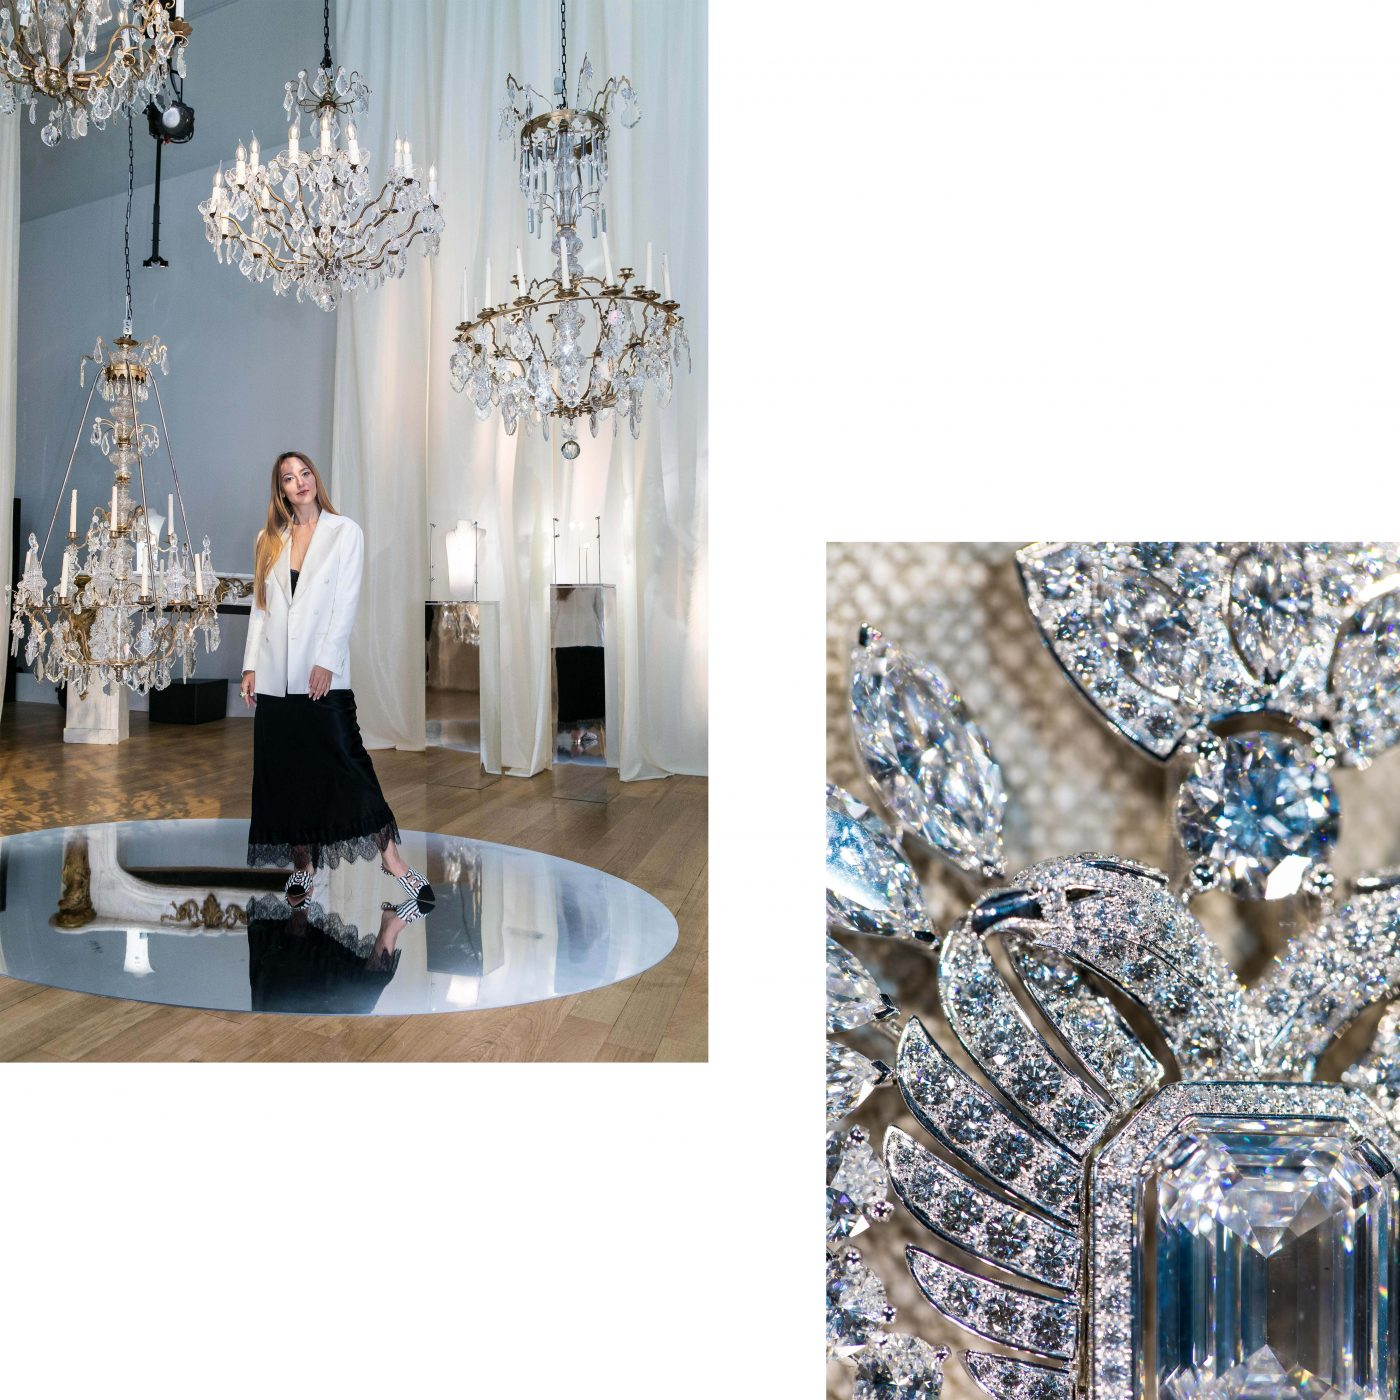 ", CHANEL ""LE PARIS RUSSE DE CHANEL"" HIGH JEWELLERY COLLECTION, PARIS COUTURE WEEK 2019, Victoria's Jewelry Box"